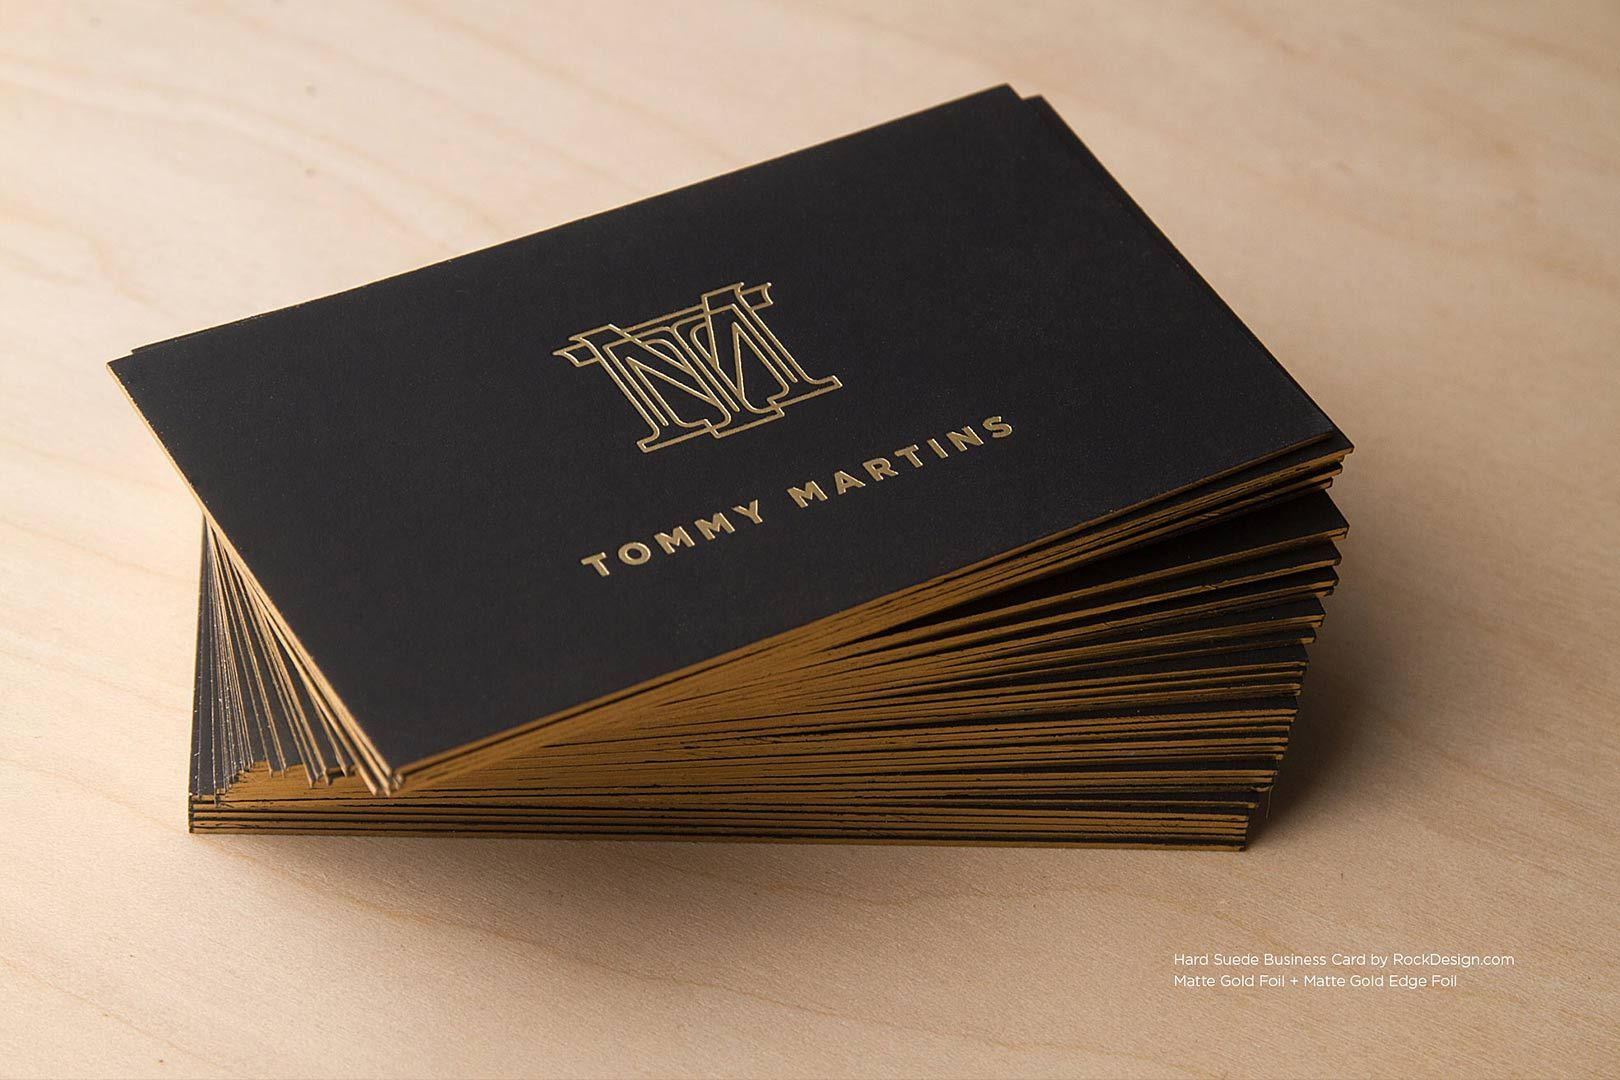 Hard Suede Business Cards RockDesign Luxury Business